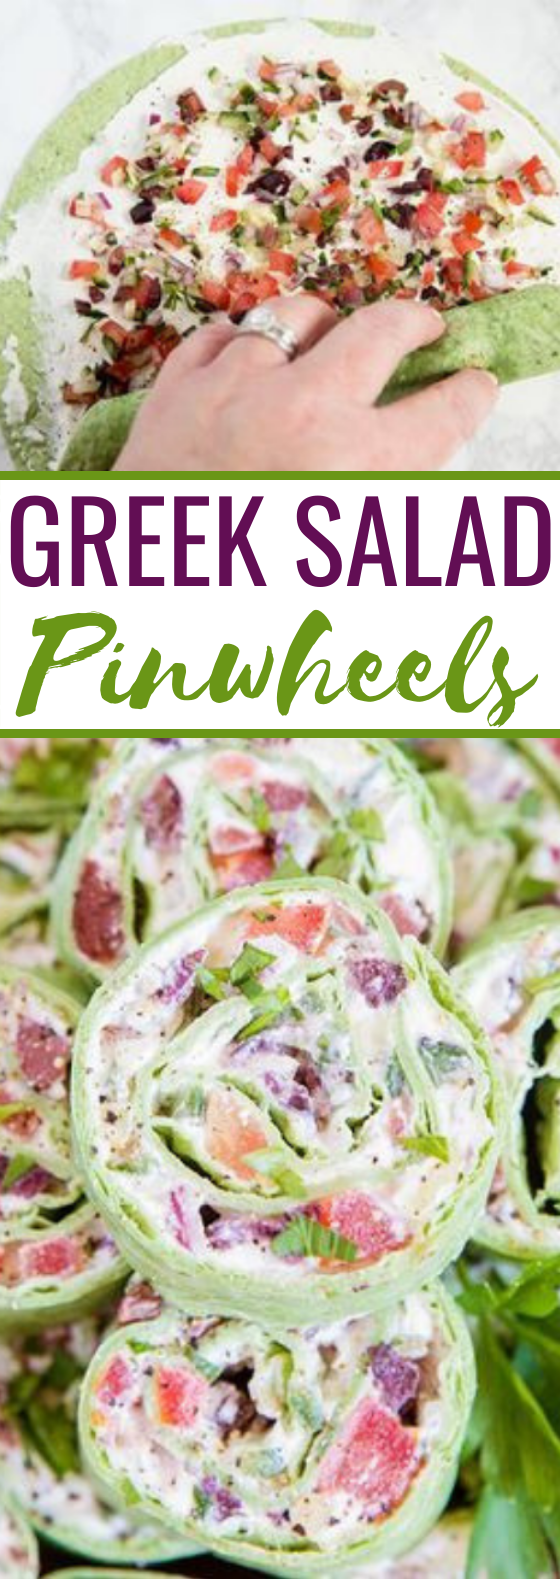 Greek Salad Pinwheels #healthy #lunch #keto #appetizers #mealprep